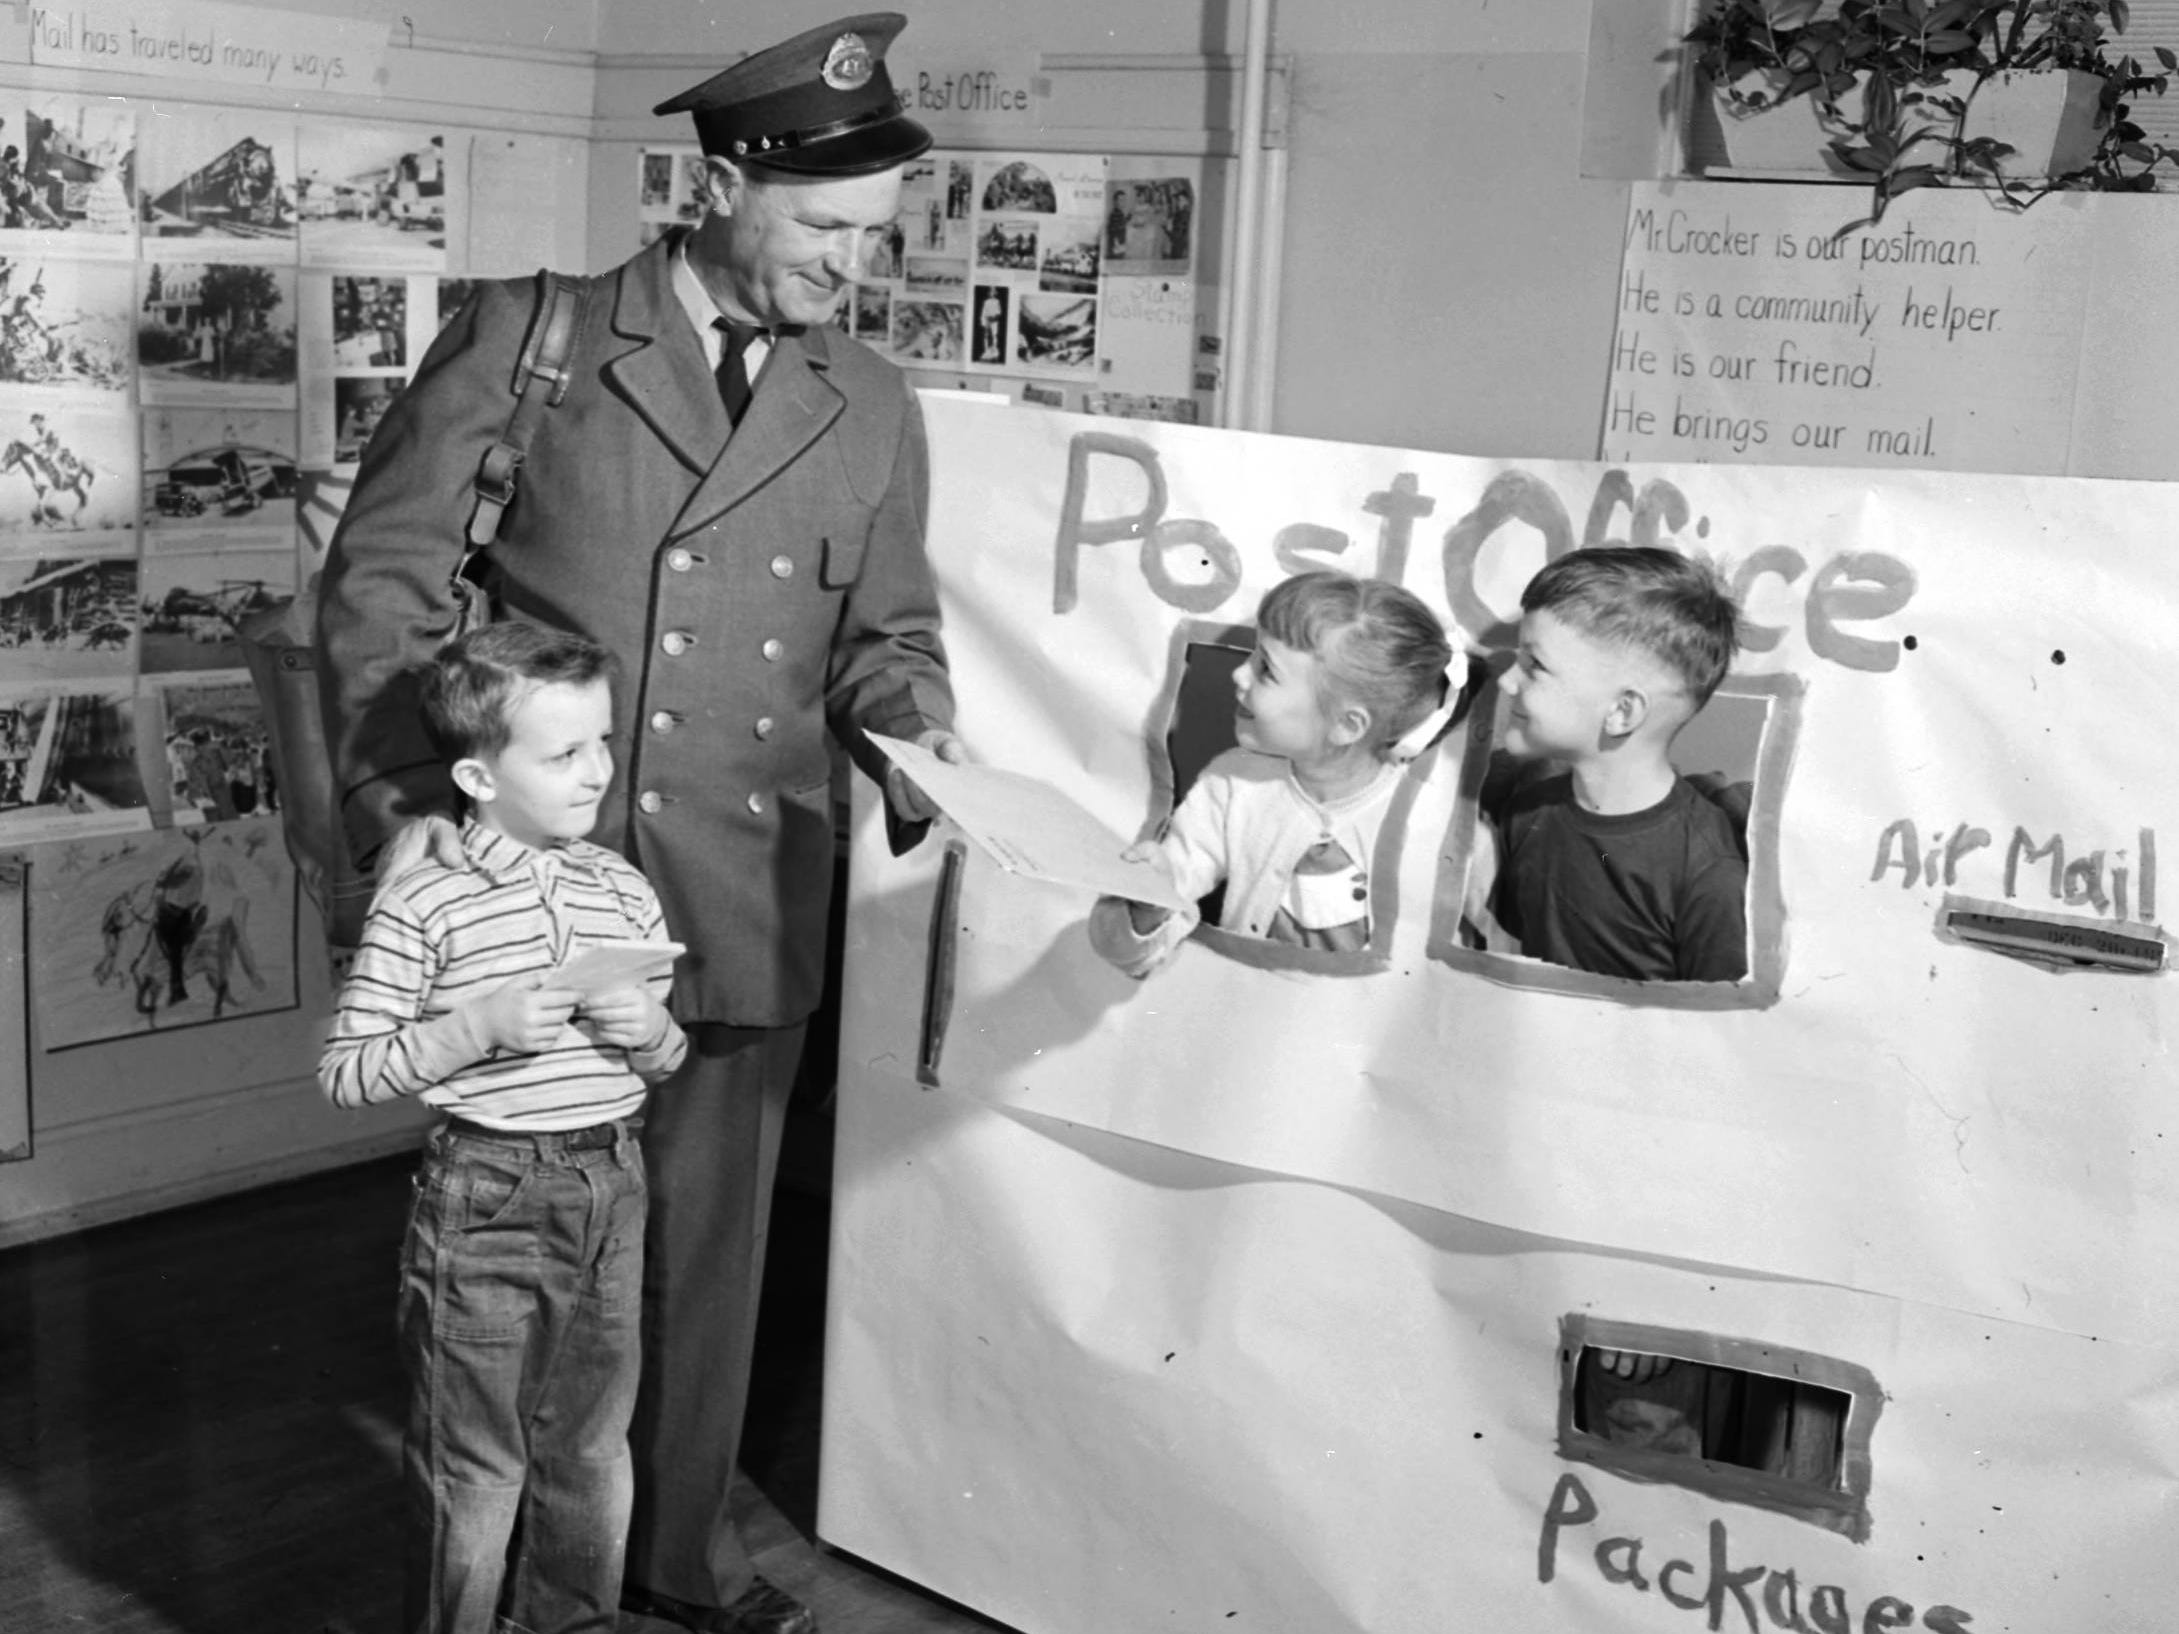 McGregor School first-graders learned about post office operations under the direction of their teacher, Miss Faye Johnson. The school's postman, Harve Crocker, is pictured with Mike Crocker, standing, Betty Kay Baker, and Richard Spahr. Published in the News & Leader on Feb. 12, 1956.